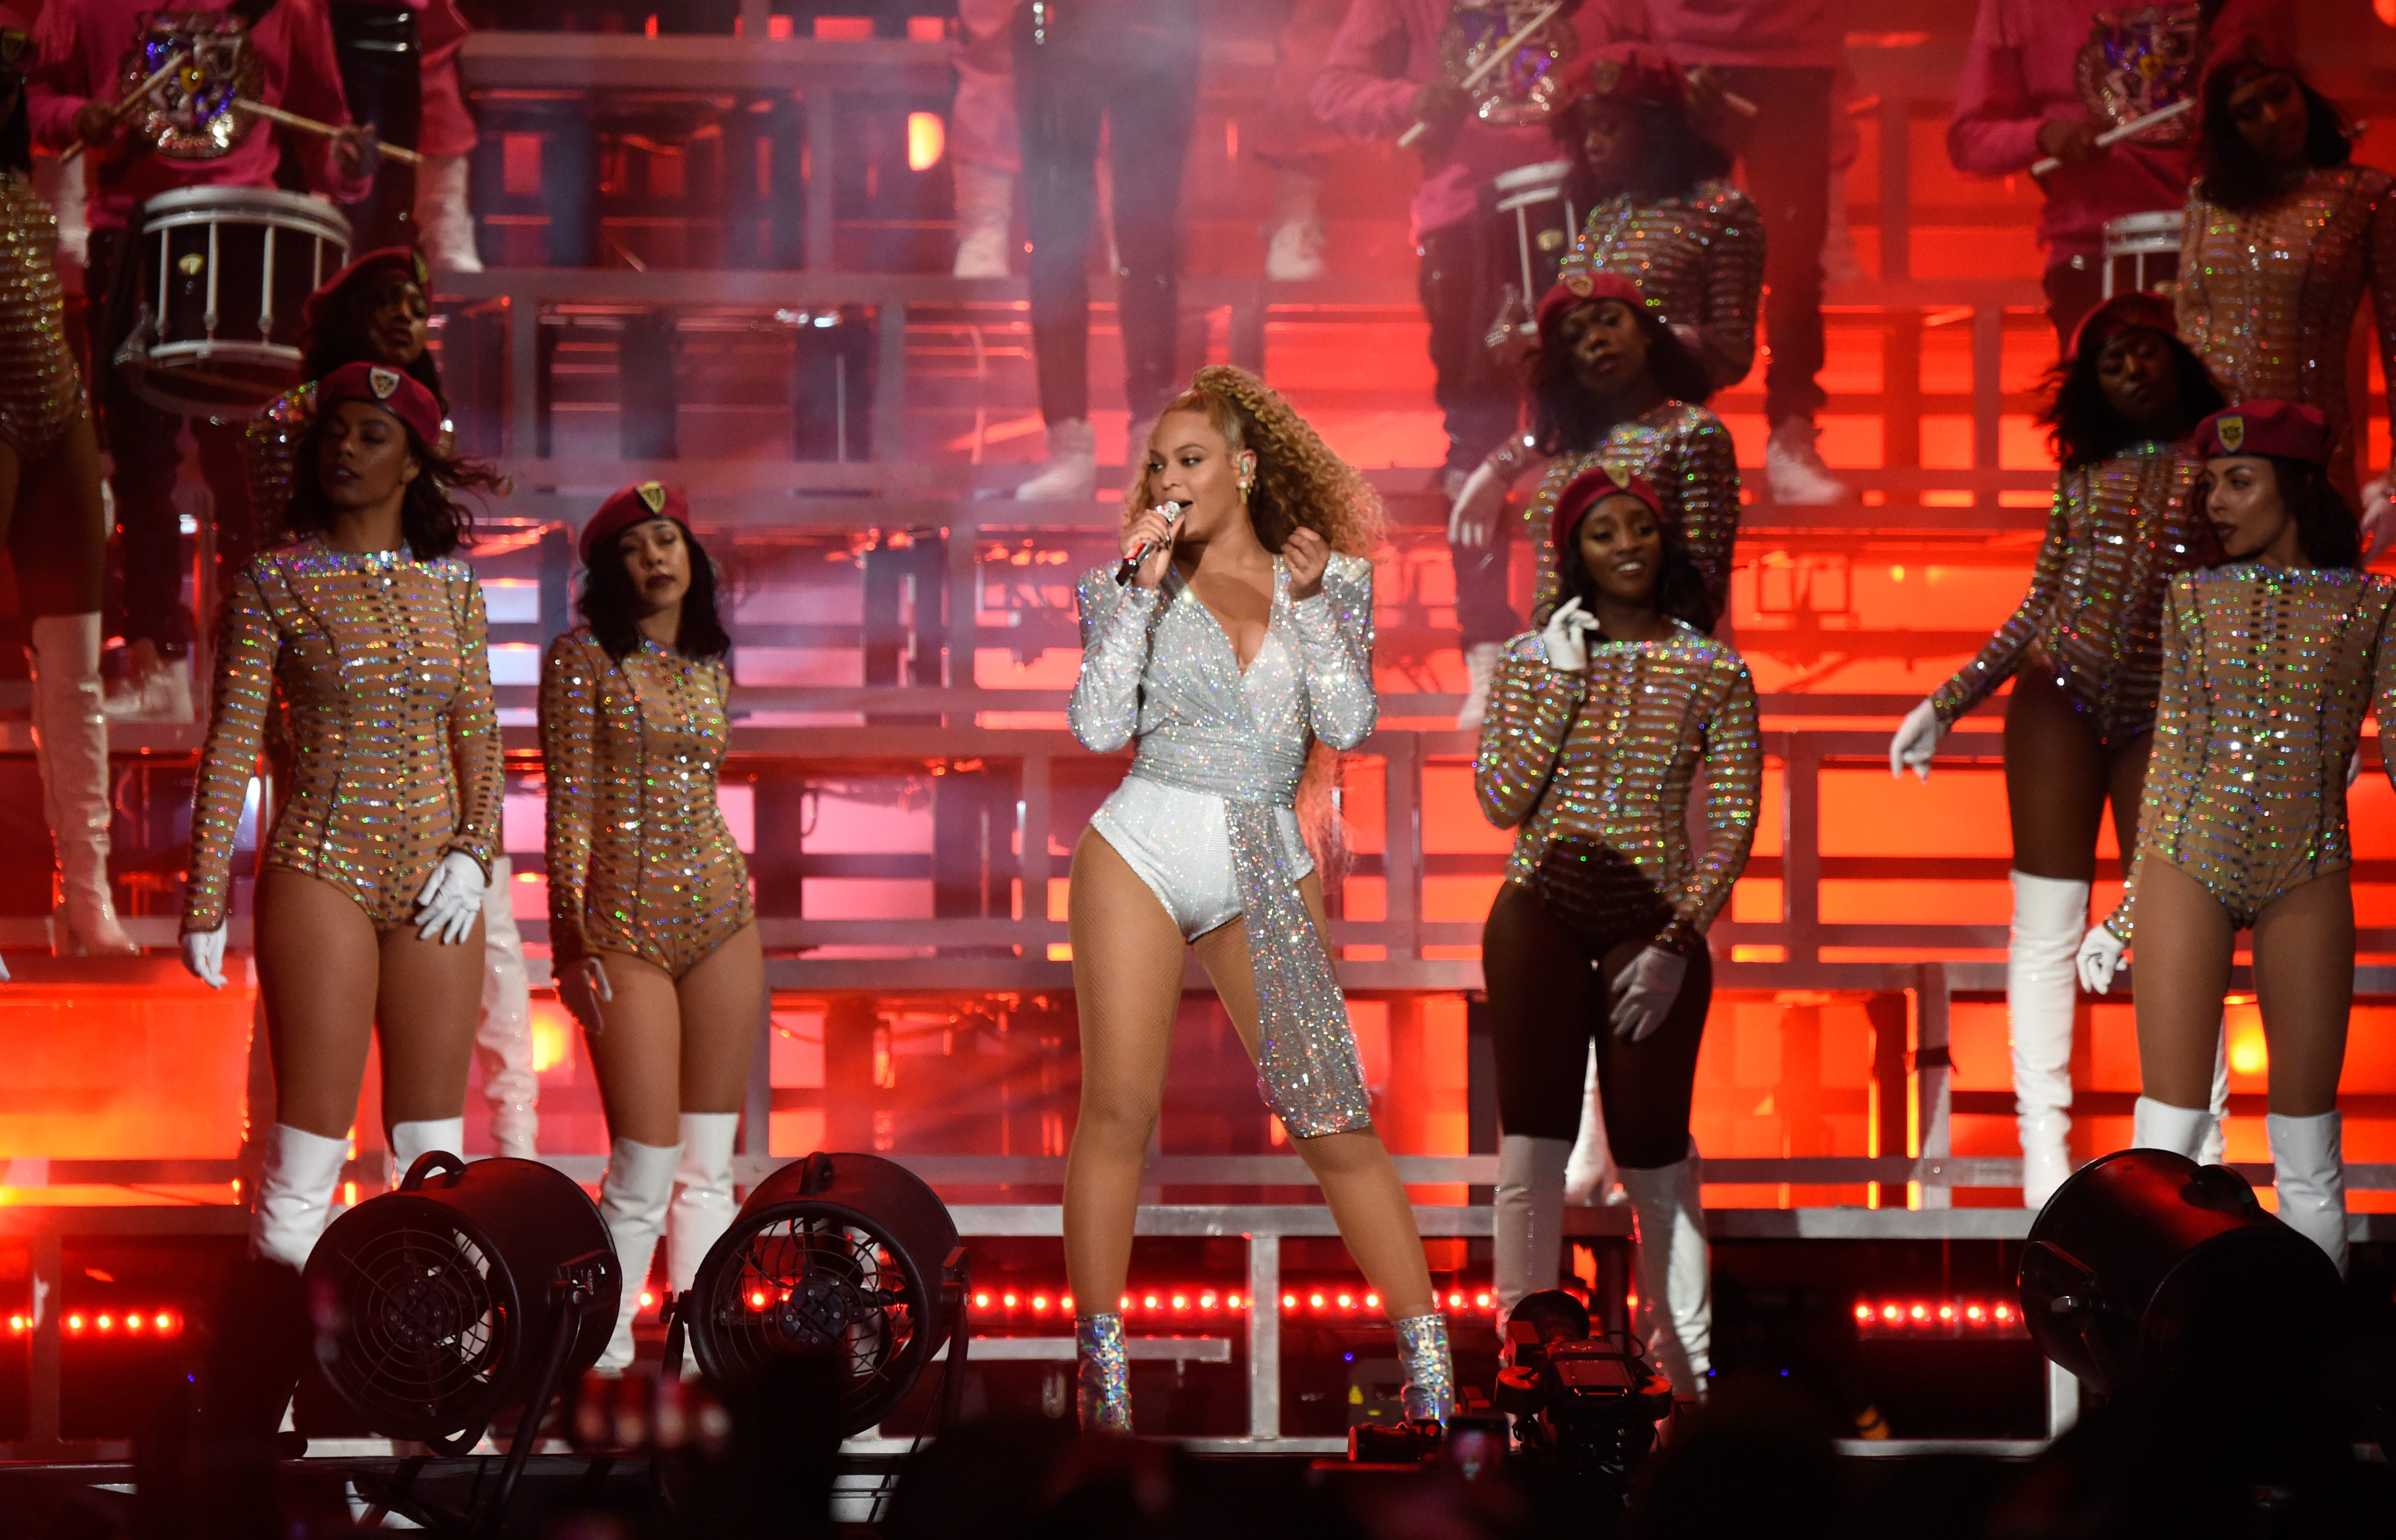 'Homecoming': The Beyhive Reacts To Beyonce's Netflix Documentary and Live Album